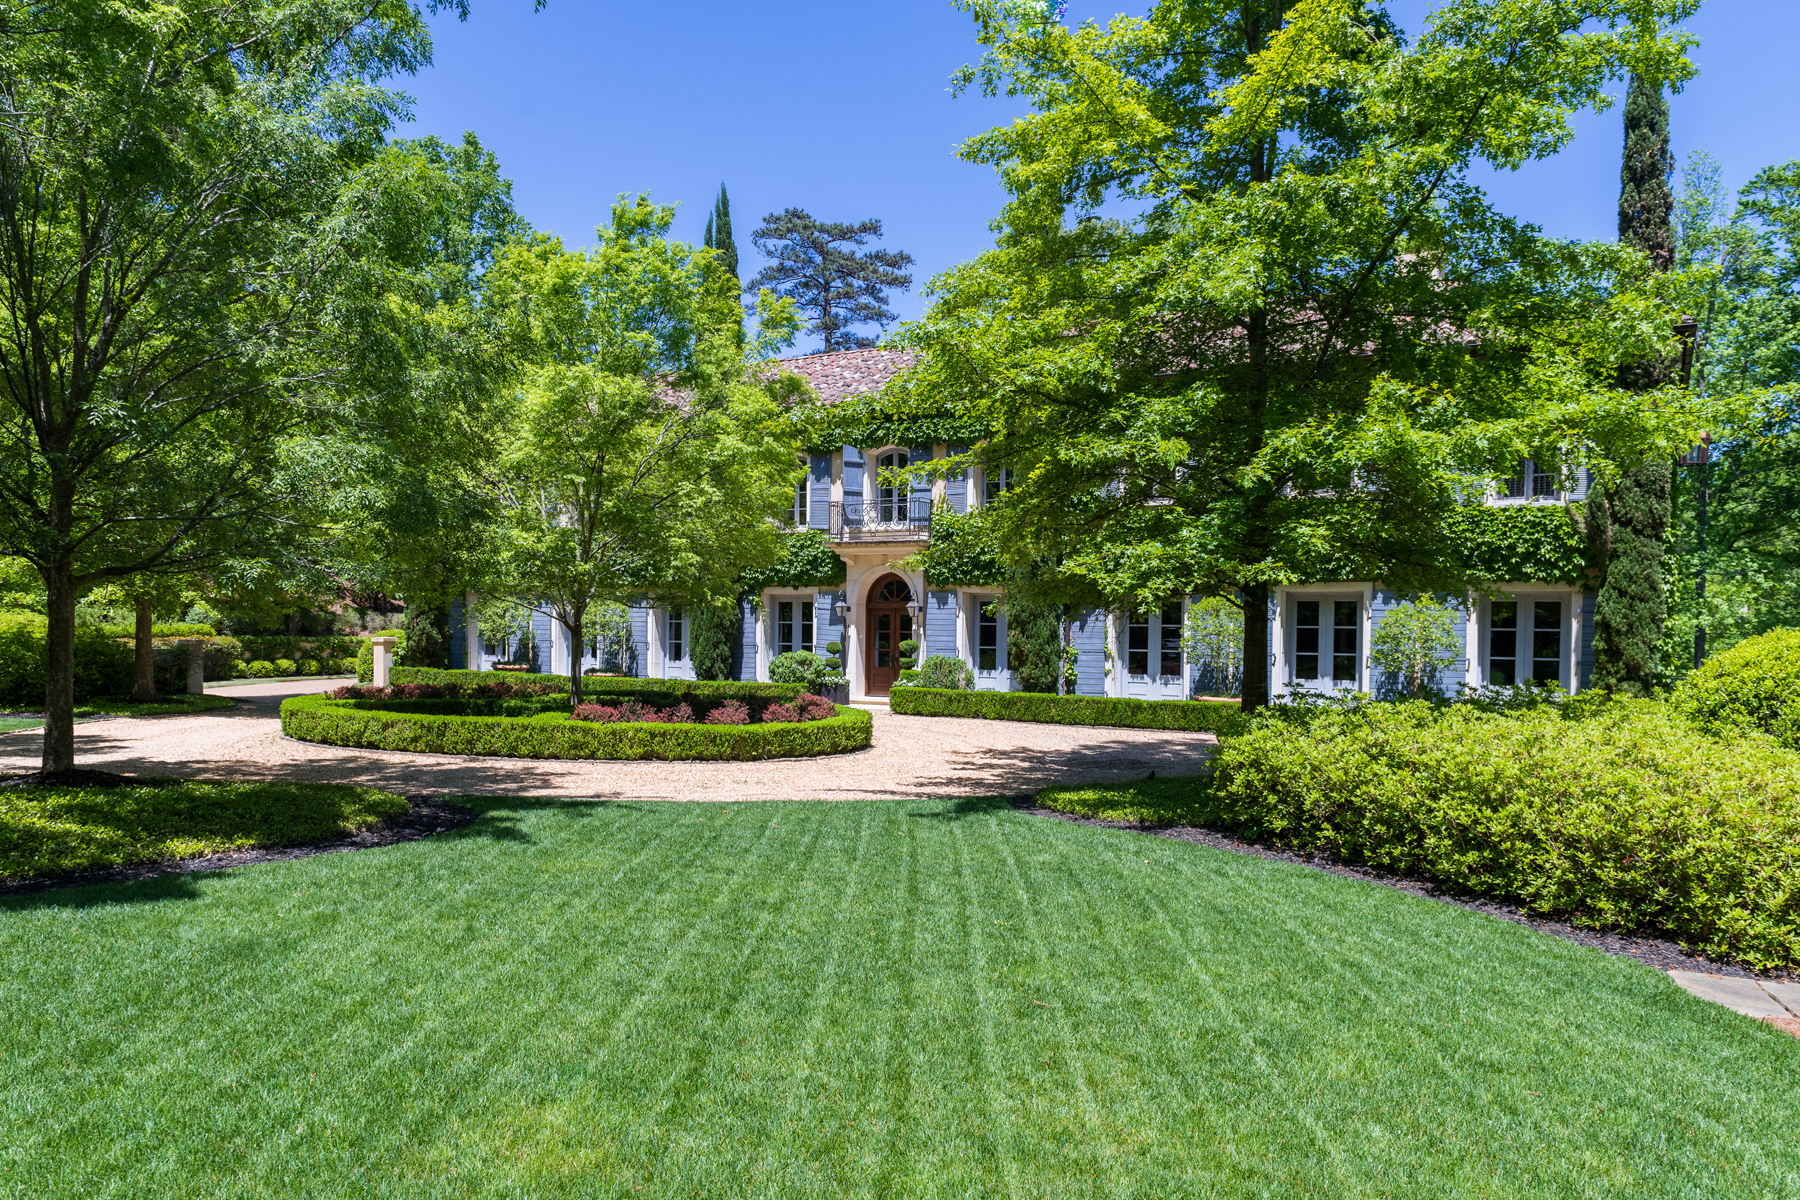 Single Family Home for Sale at Elegant Gated 2.2 Acre Property On Quiet Street In Buckhead 1845 River Forest Road NW Atlanta, Georgia 30327 United States